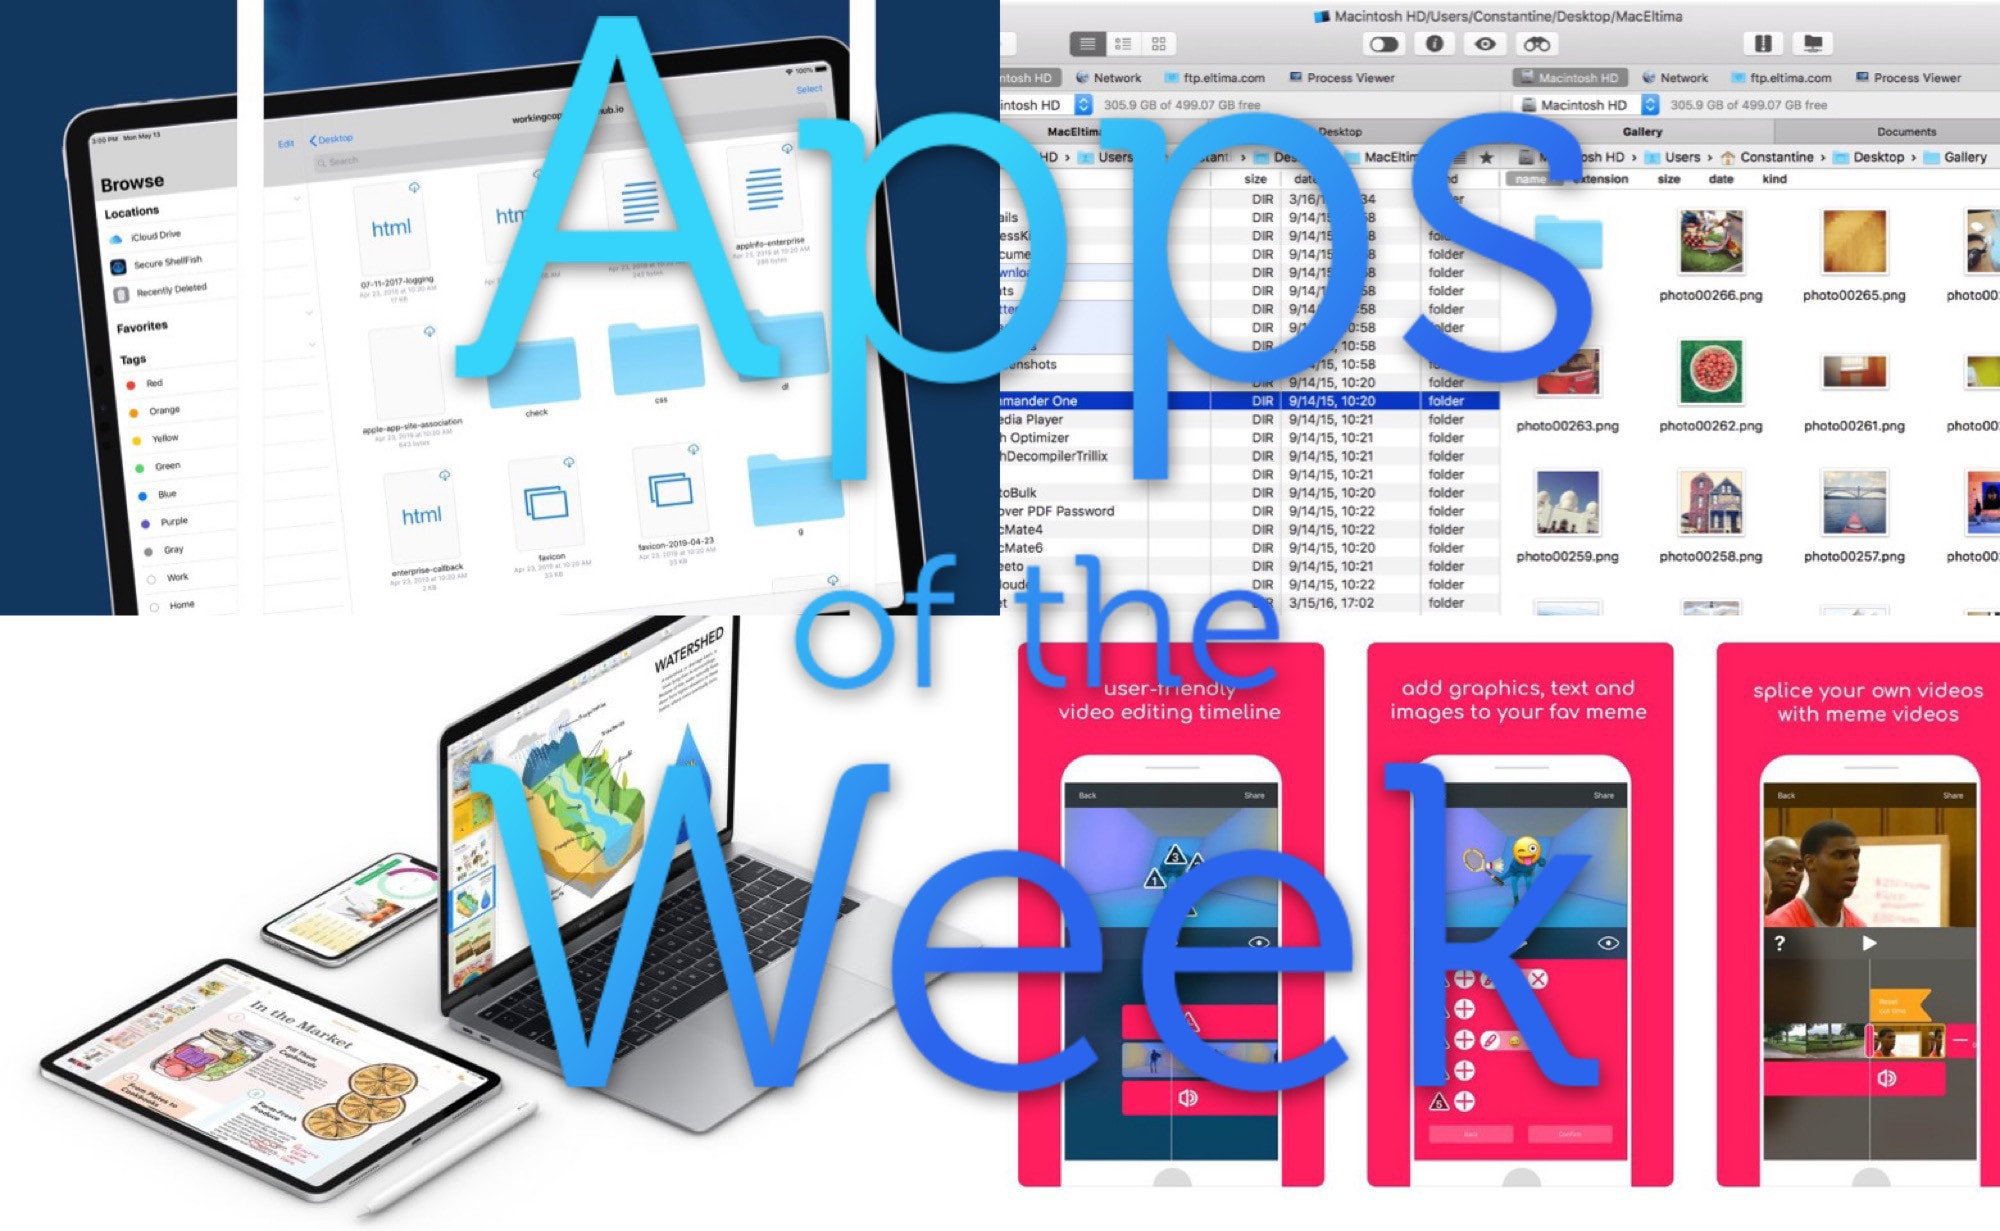 What a sweet suite of apps we have this week.